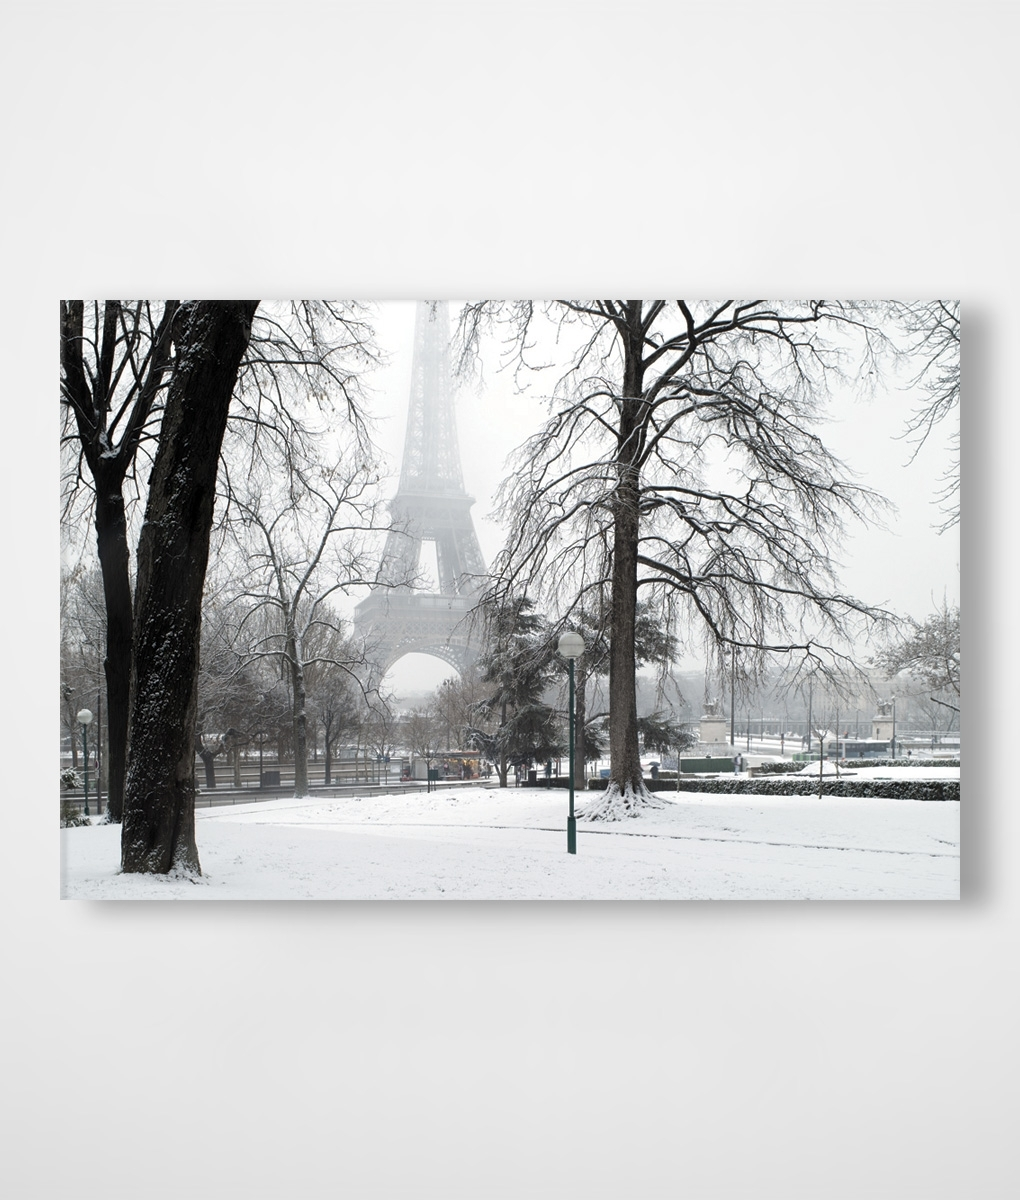 Paris In Winter Snow Canvas Print | Framingland Regarding Newest Canvas Wall Art Of Paris (View 3 of 15)